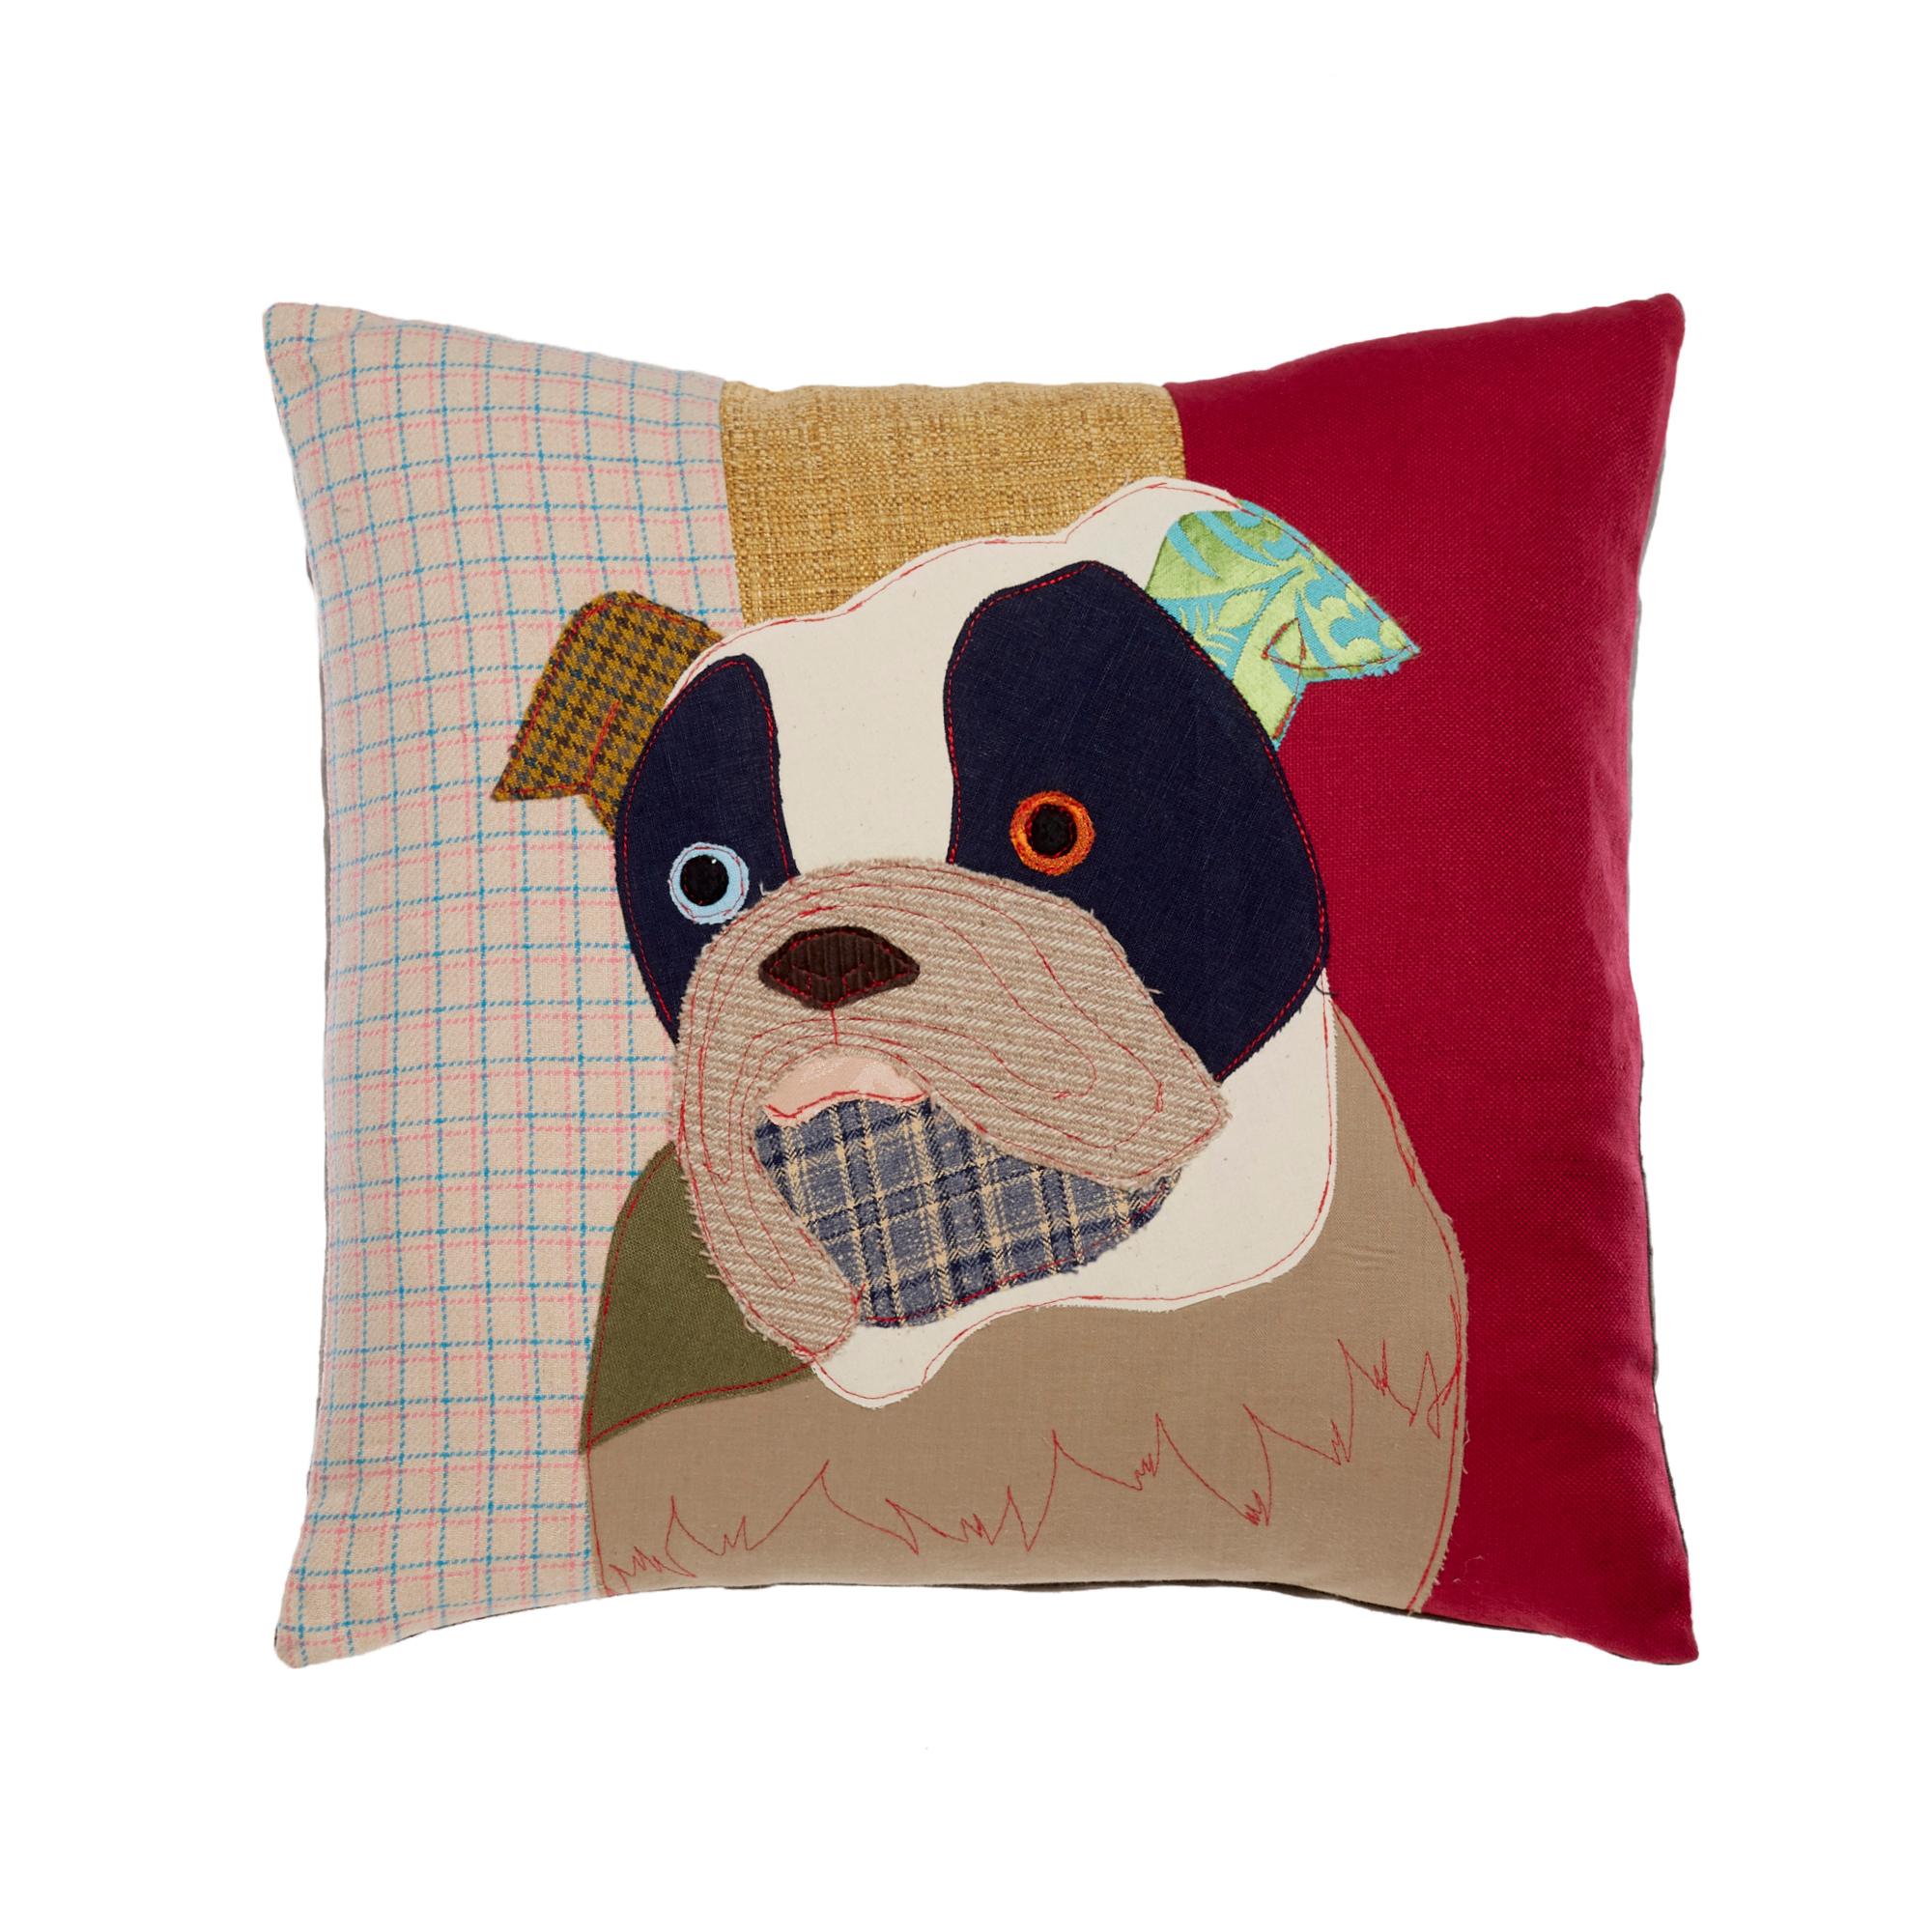 Man's Best Friend Pillow, English Bulldog